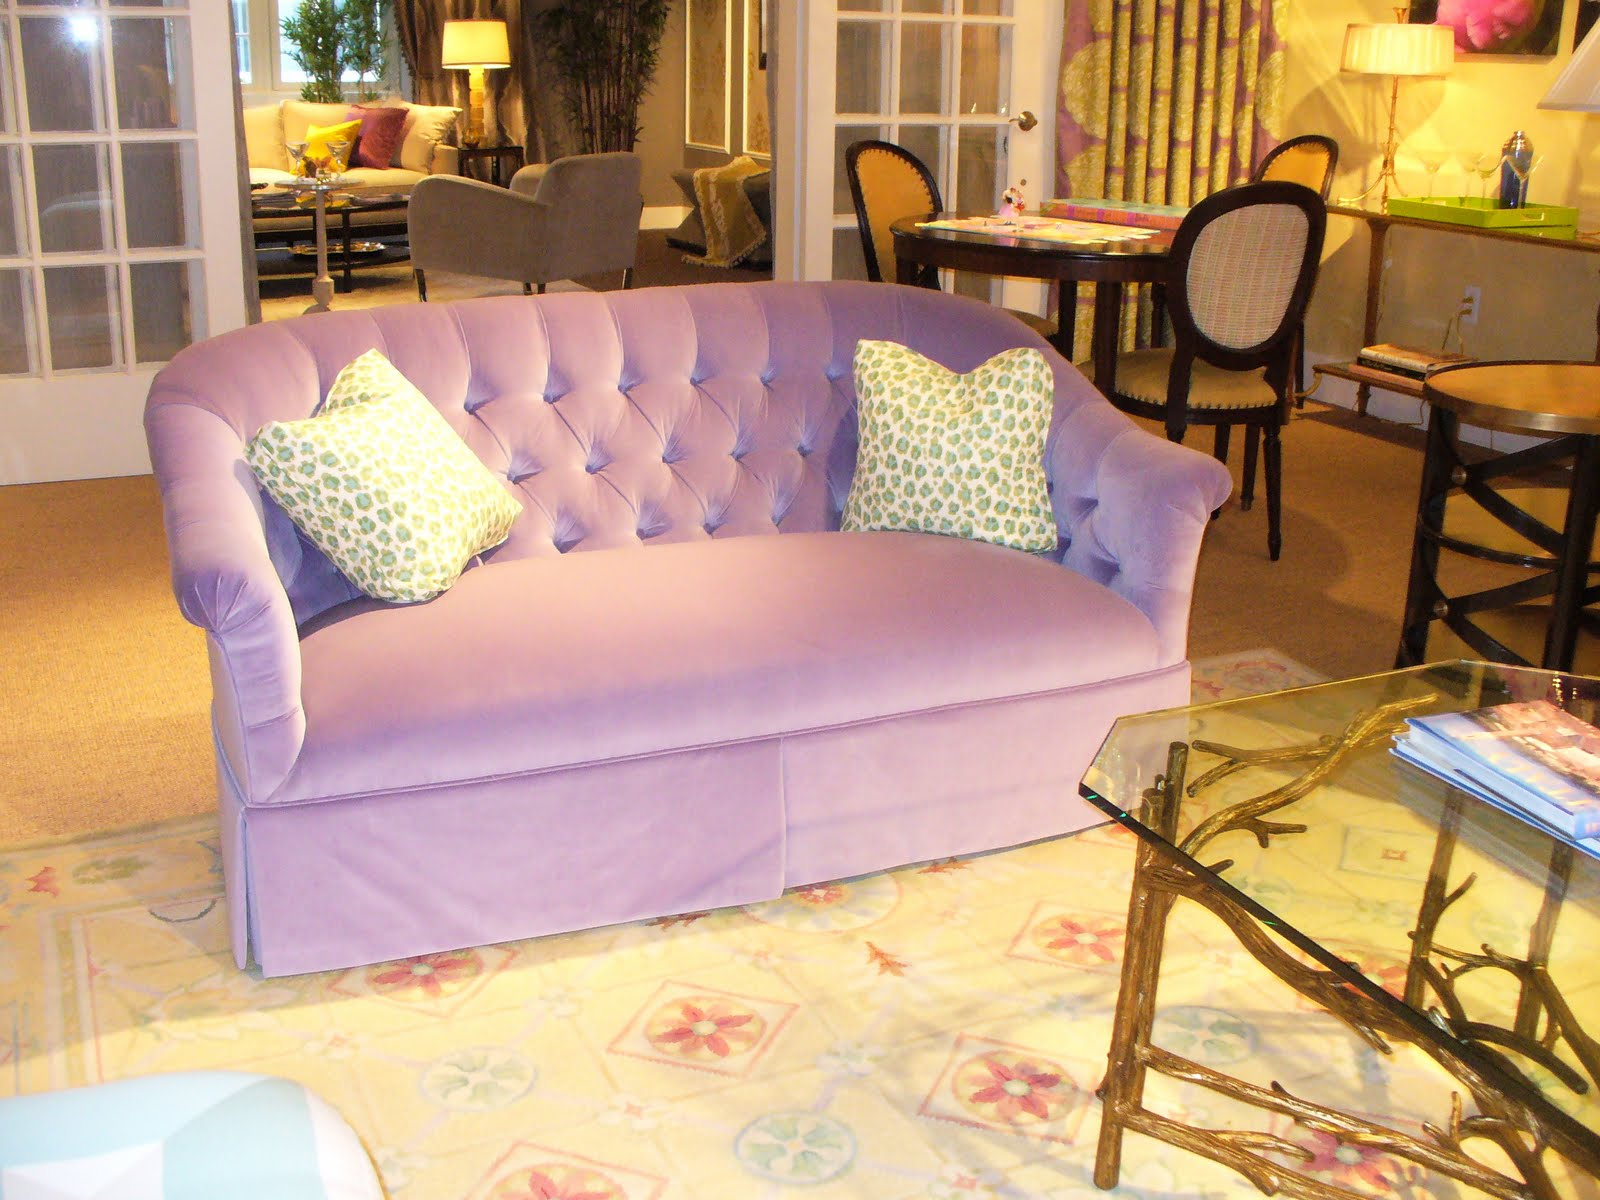 My notting hill blog - The Design Center S Dream Home Is Open Through Dec 9 Here S A Pic Of Susan Nelson S Pretty And Colorful Living Room